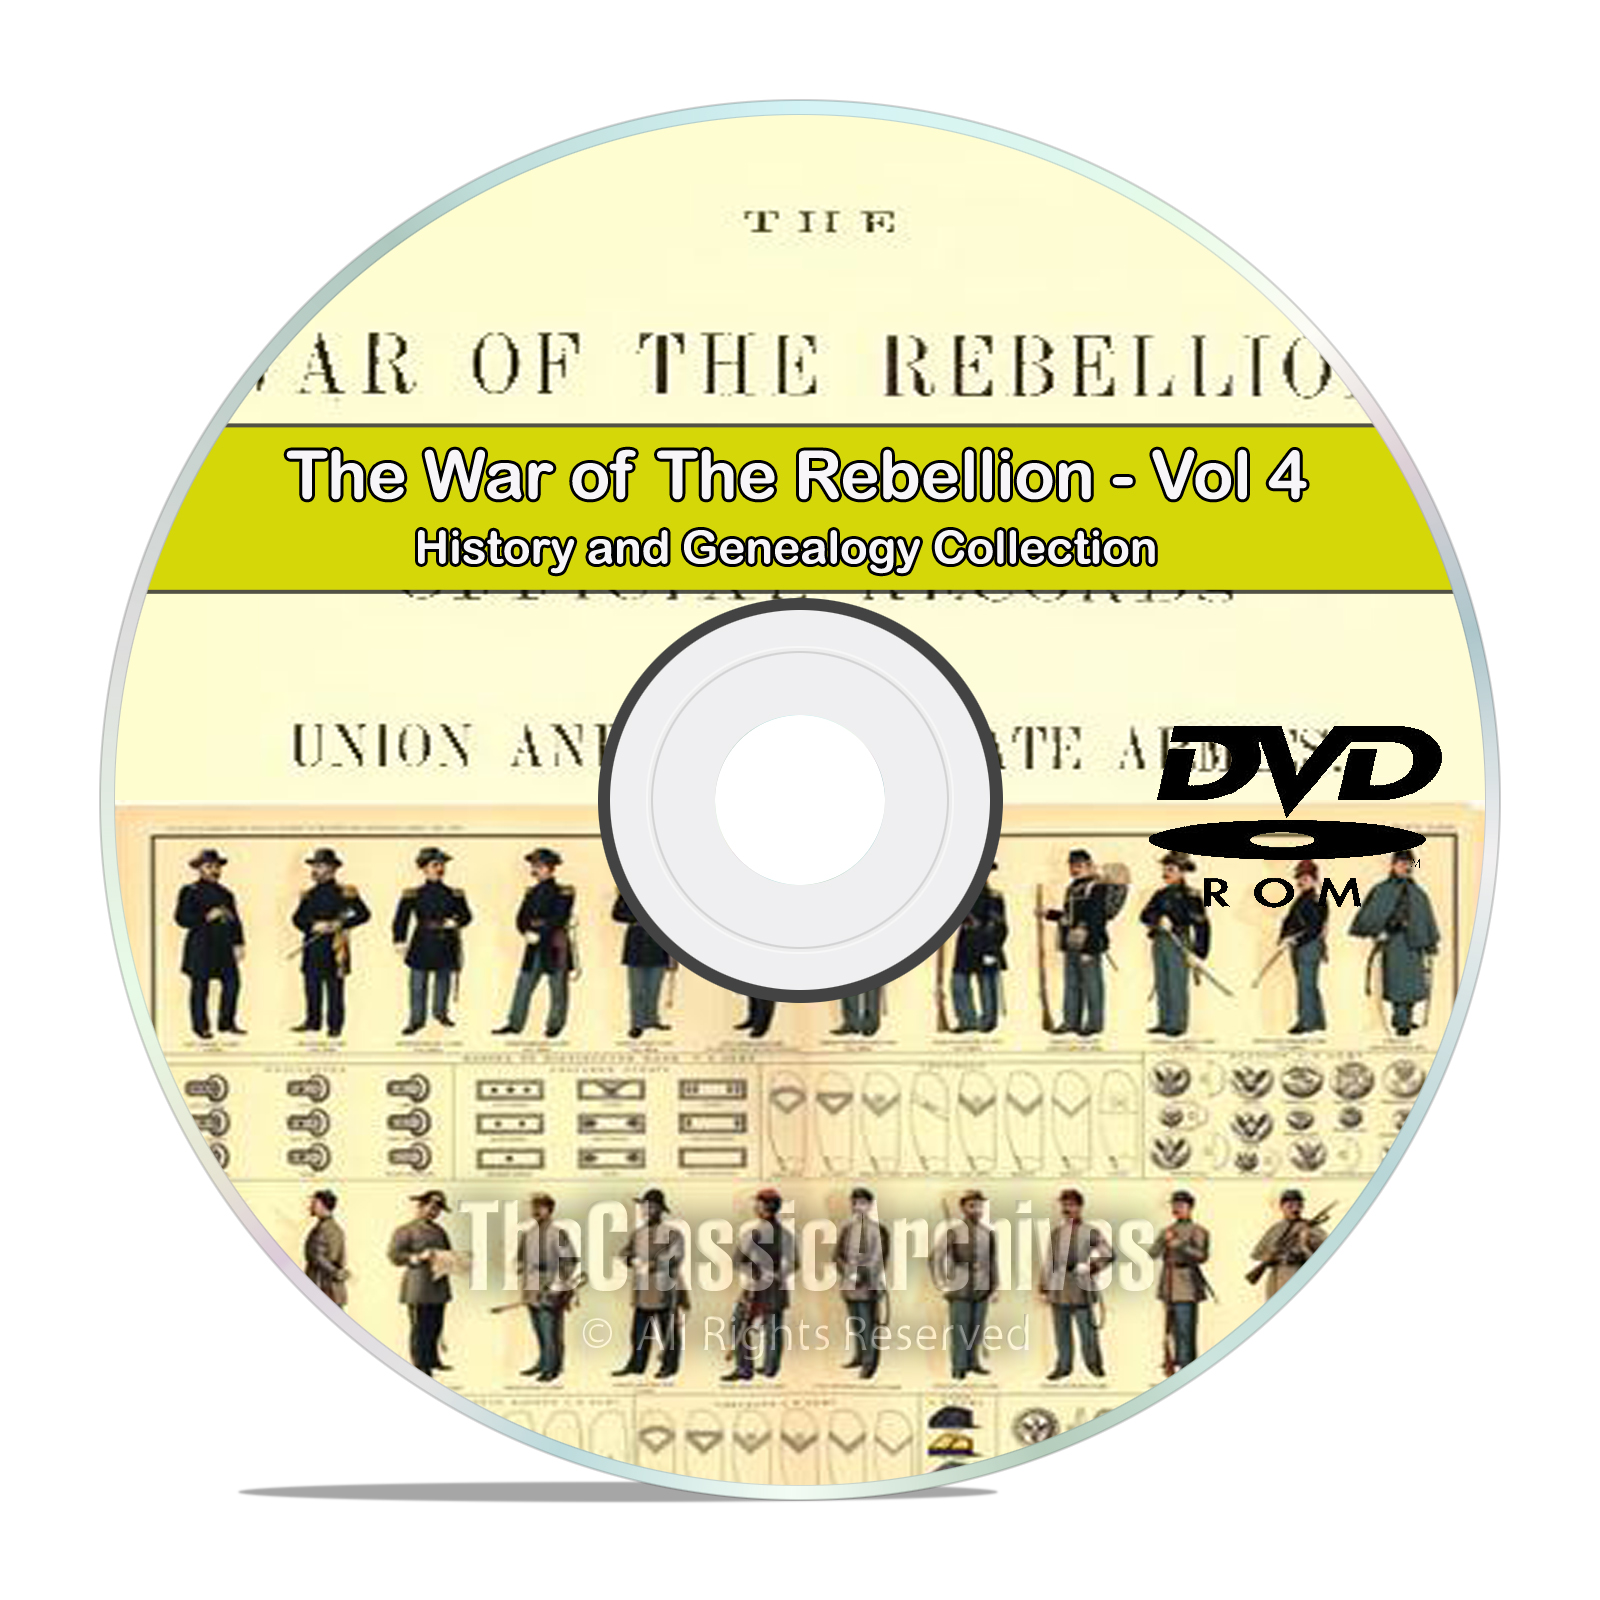 The Civil War of the Rebellion, Records, Atlas History Books Volume 4 DVD